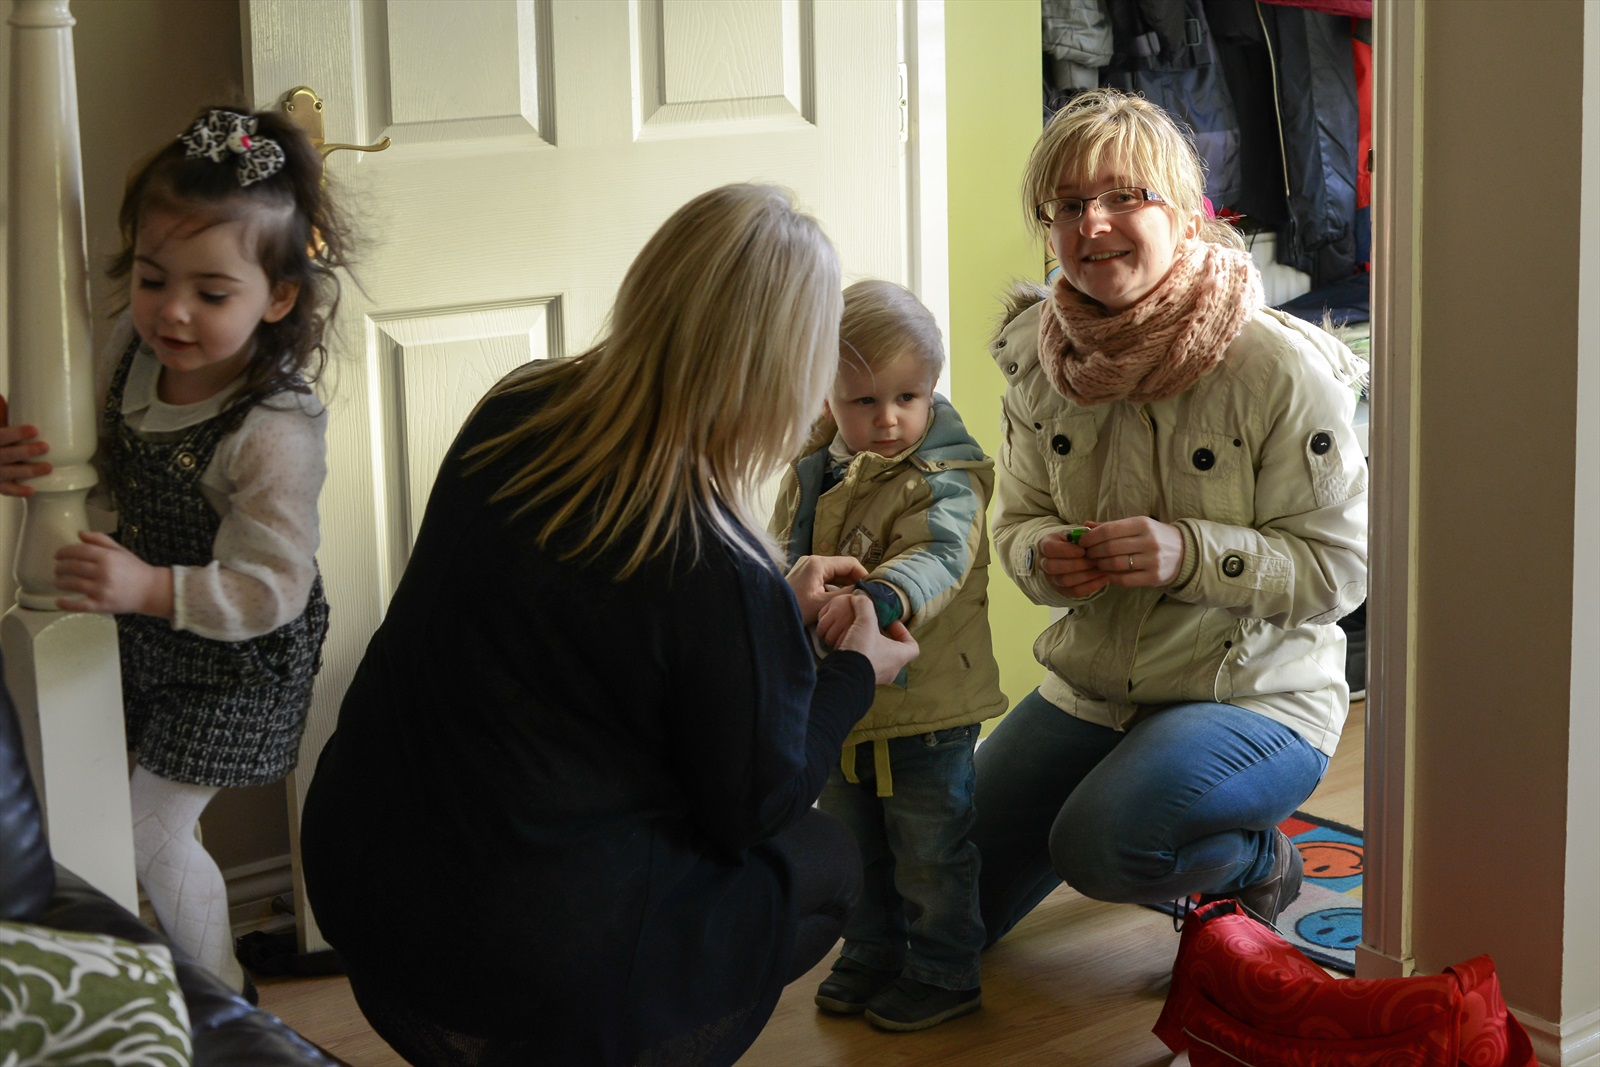 More flexible free childcare across Stirling thanks to Council's new childminder partnership